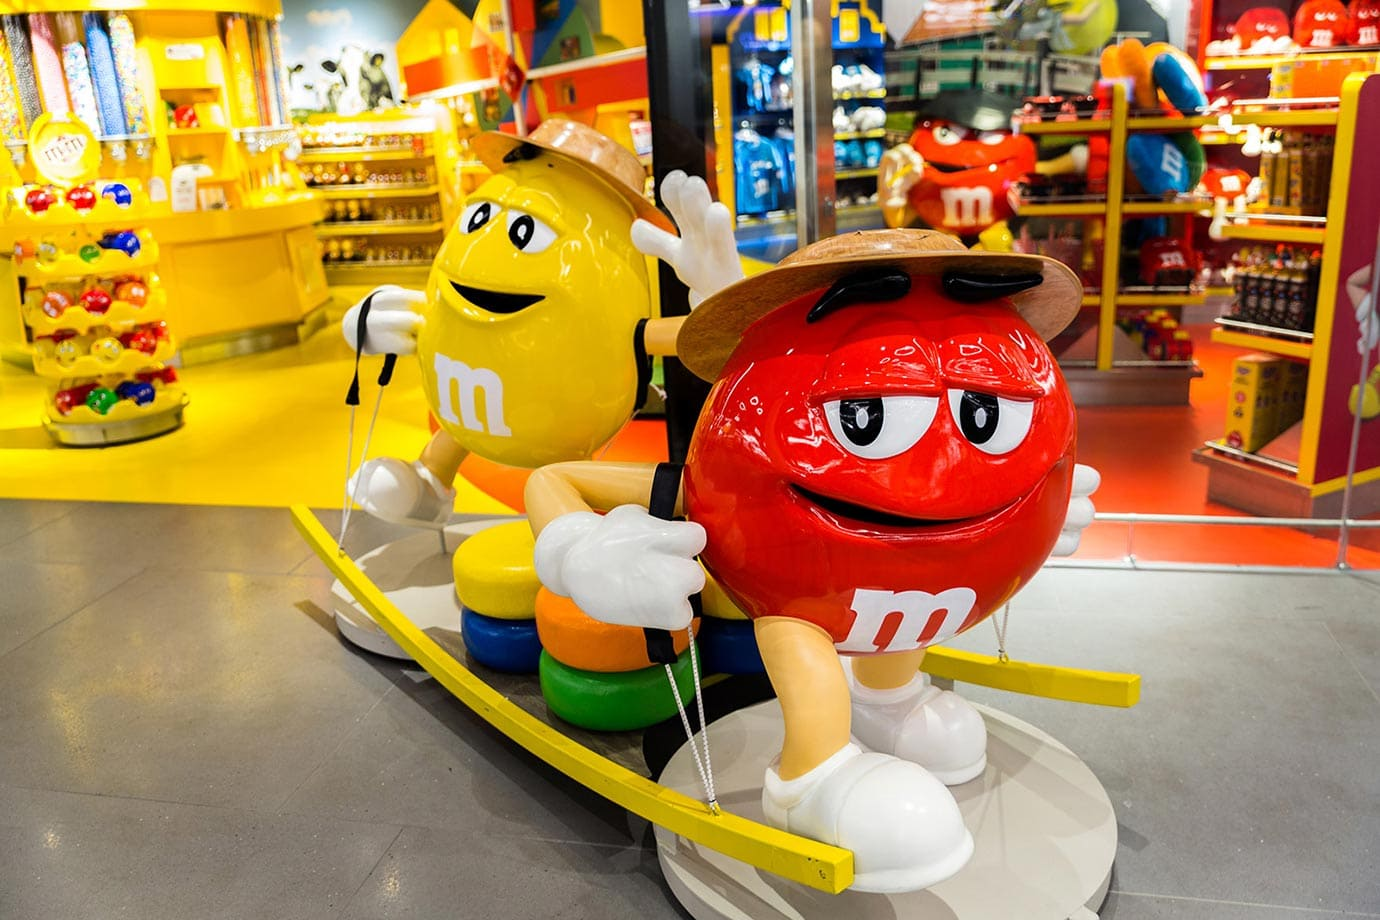 M&M store, Schiphol Airport